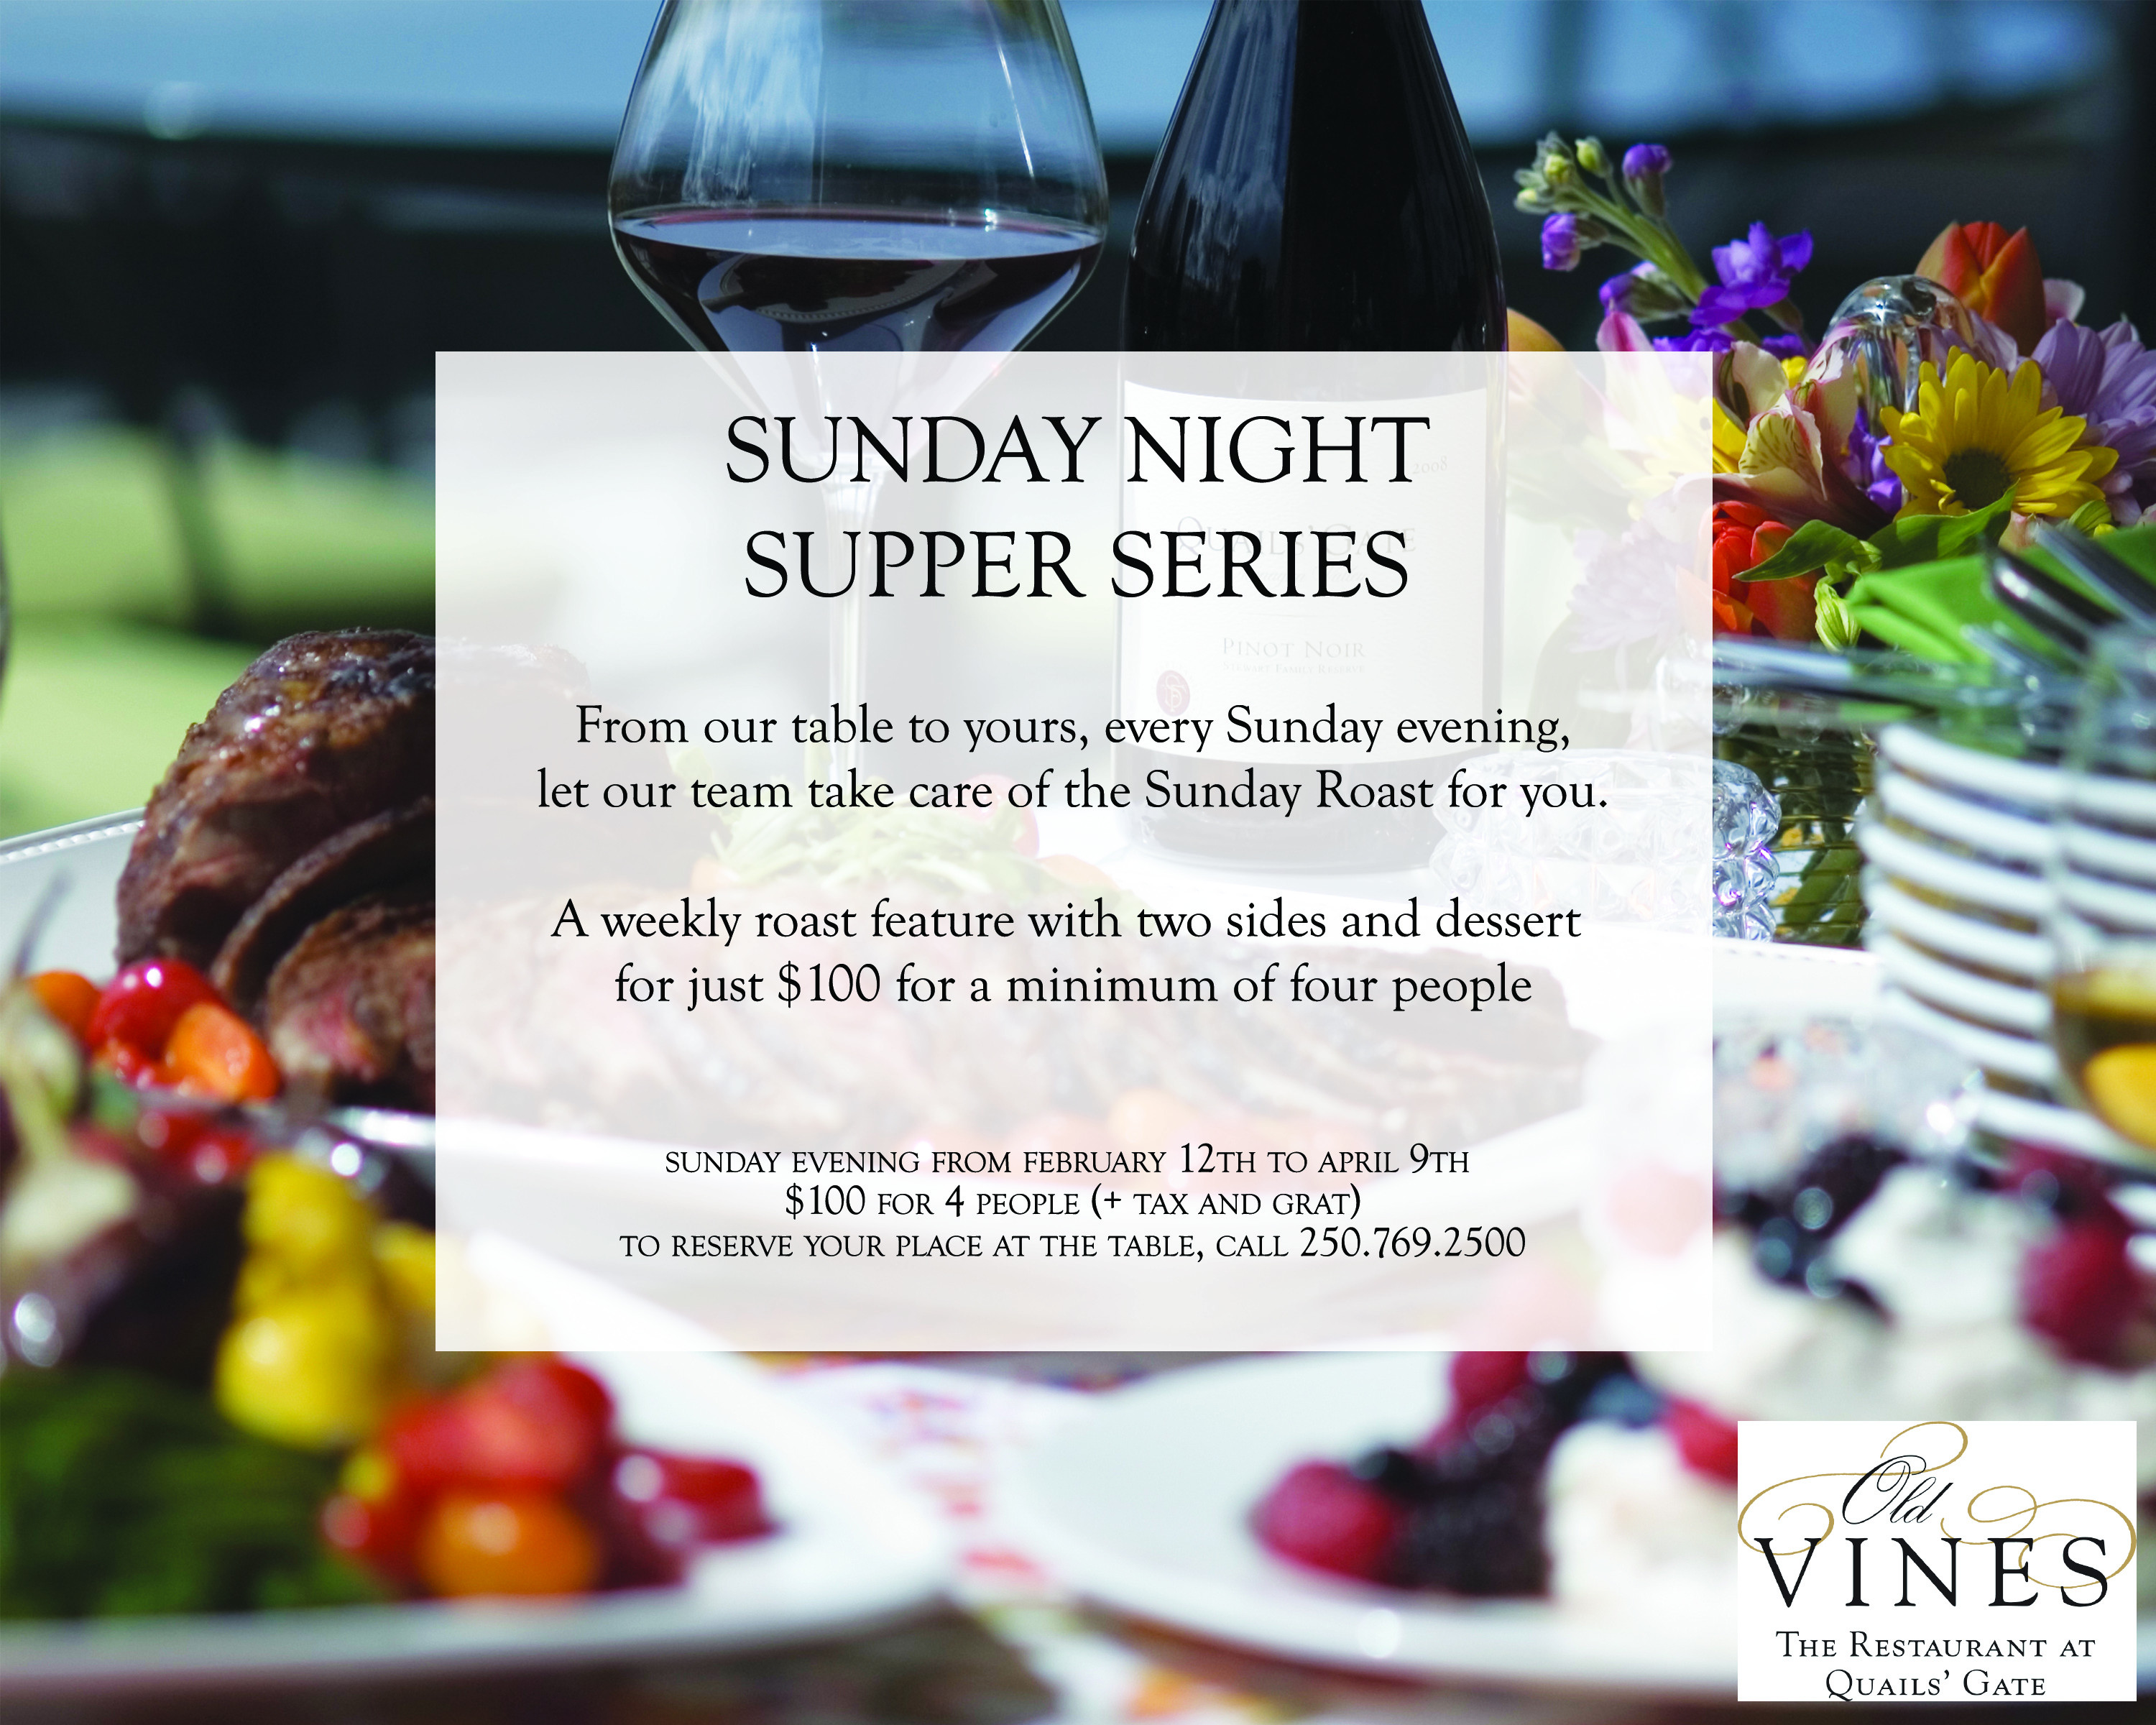 Sunday Dinner Specials  Sunday Night Suppers at Old Vines Restaurant